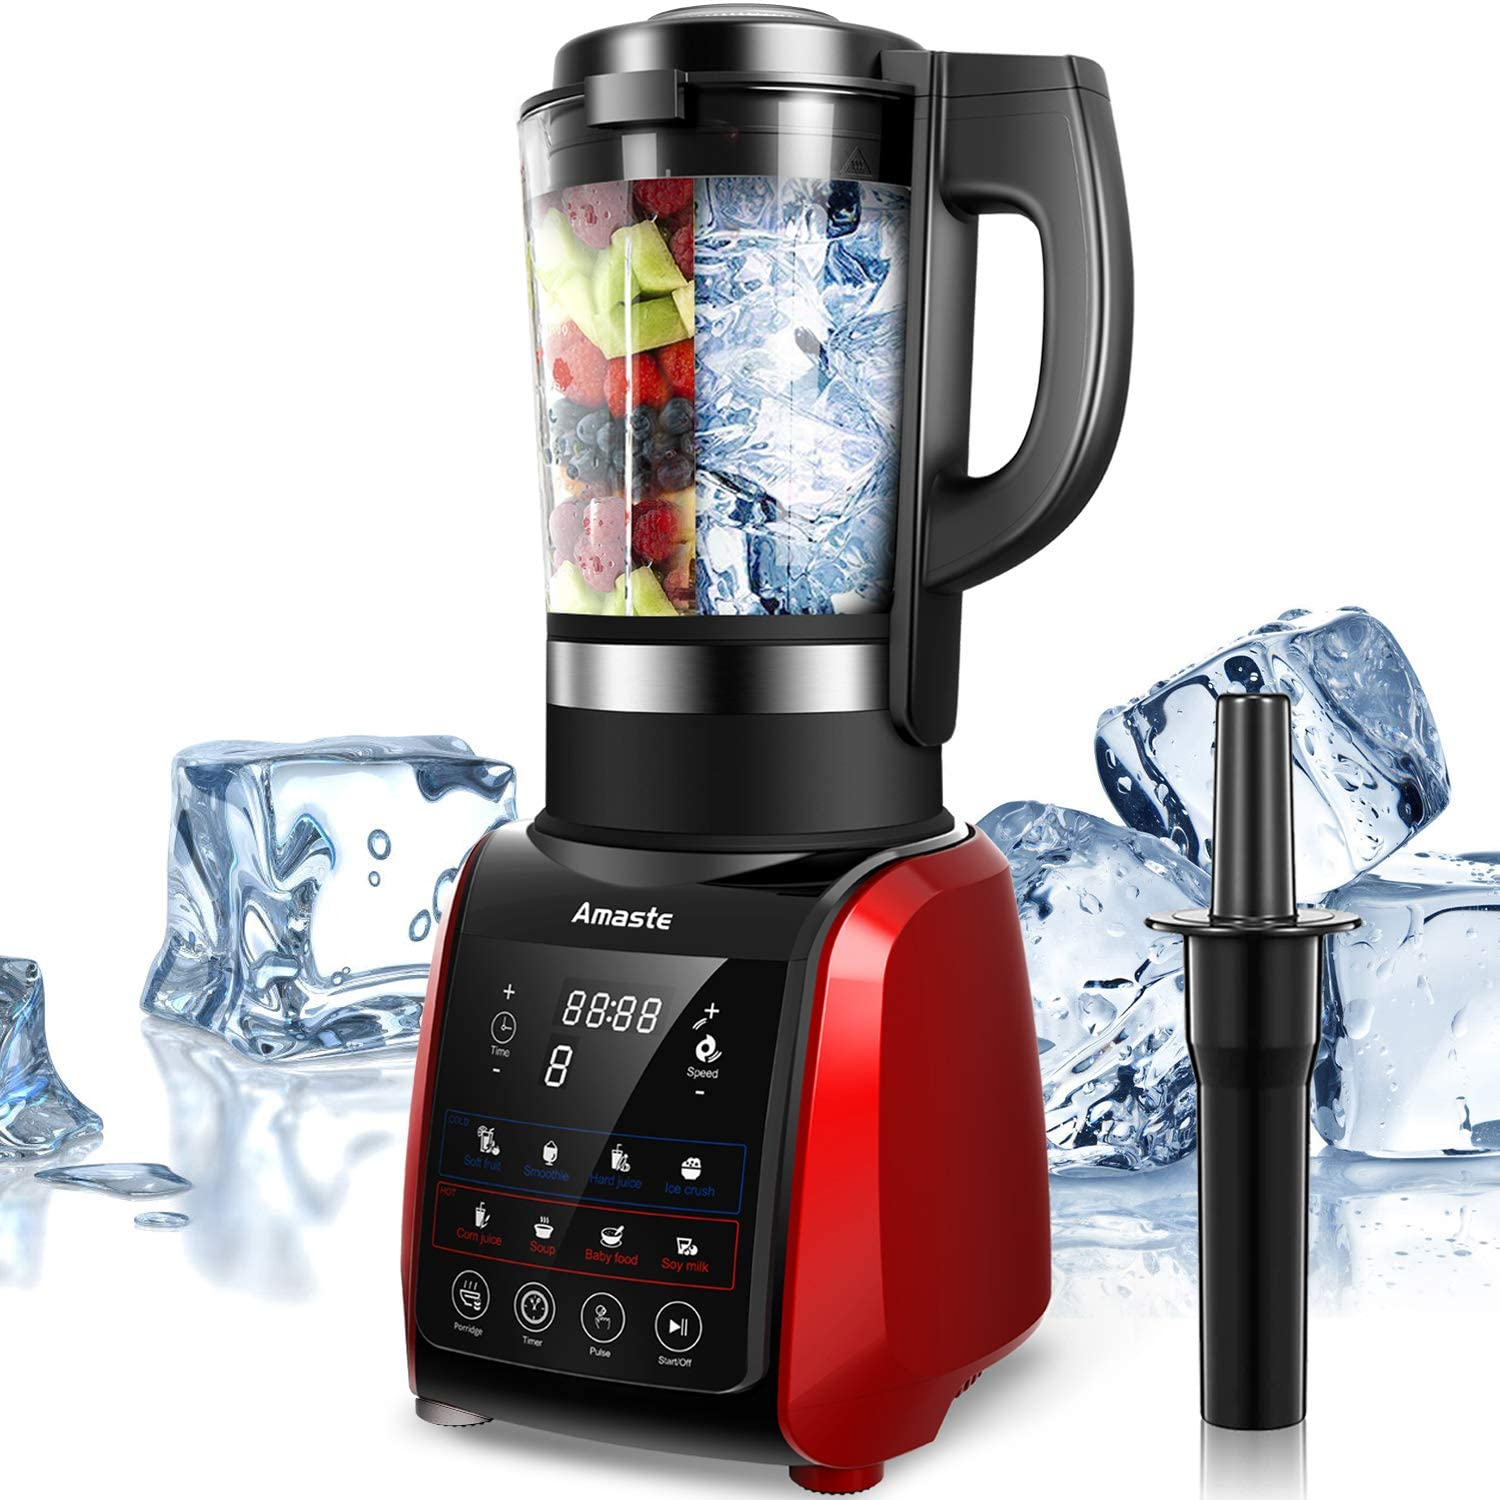 Amaste Countertop Blender for Smoothies, Shakes and Soup